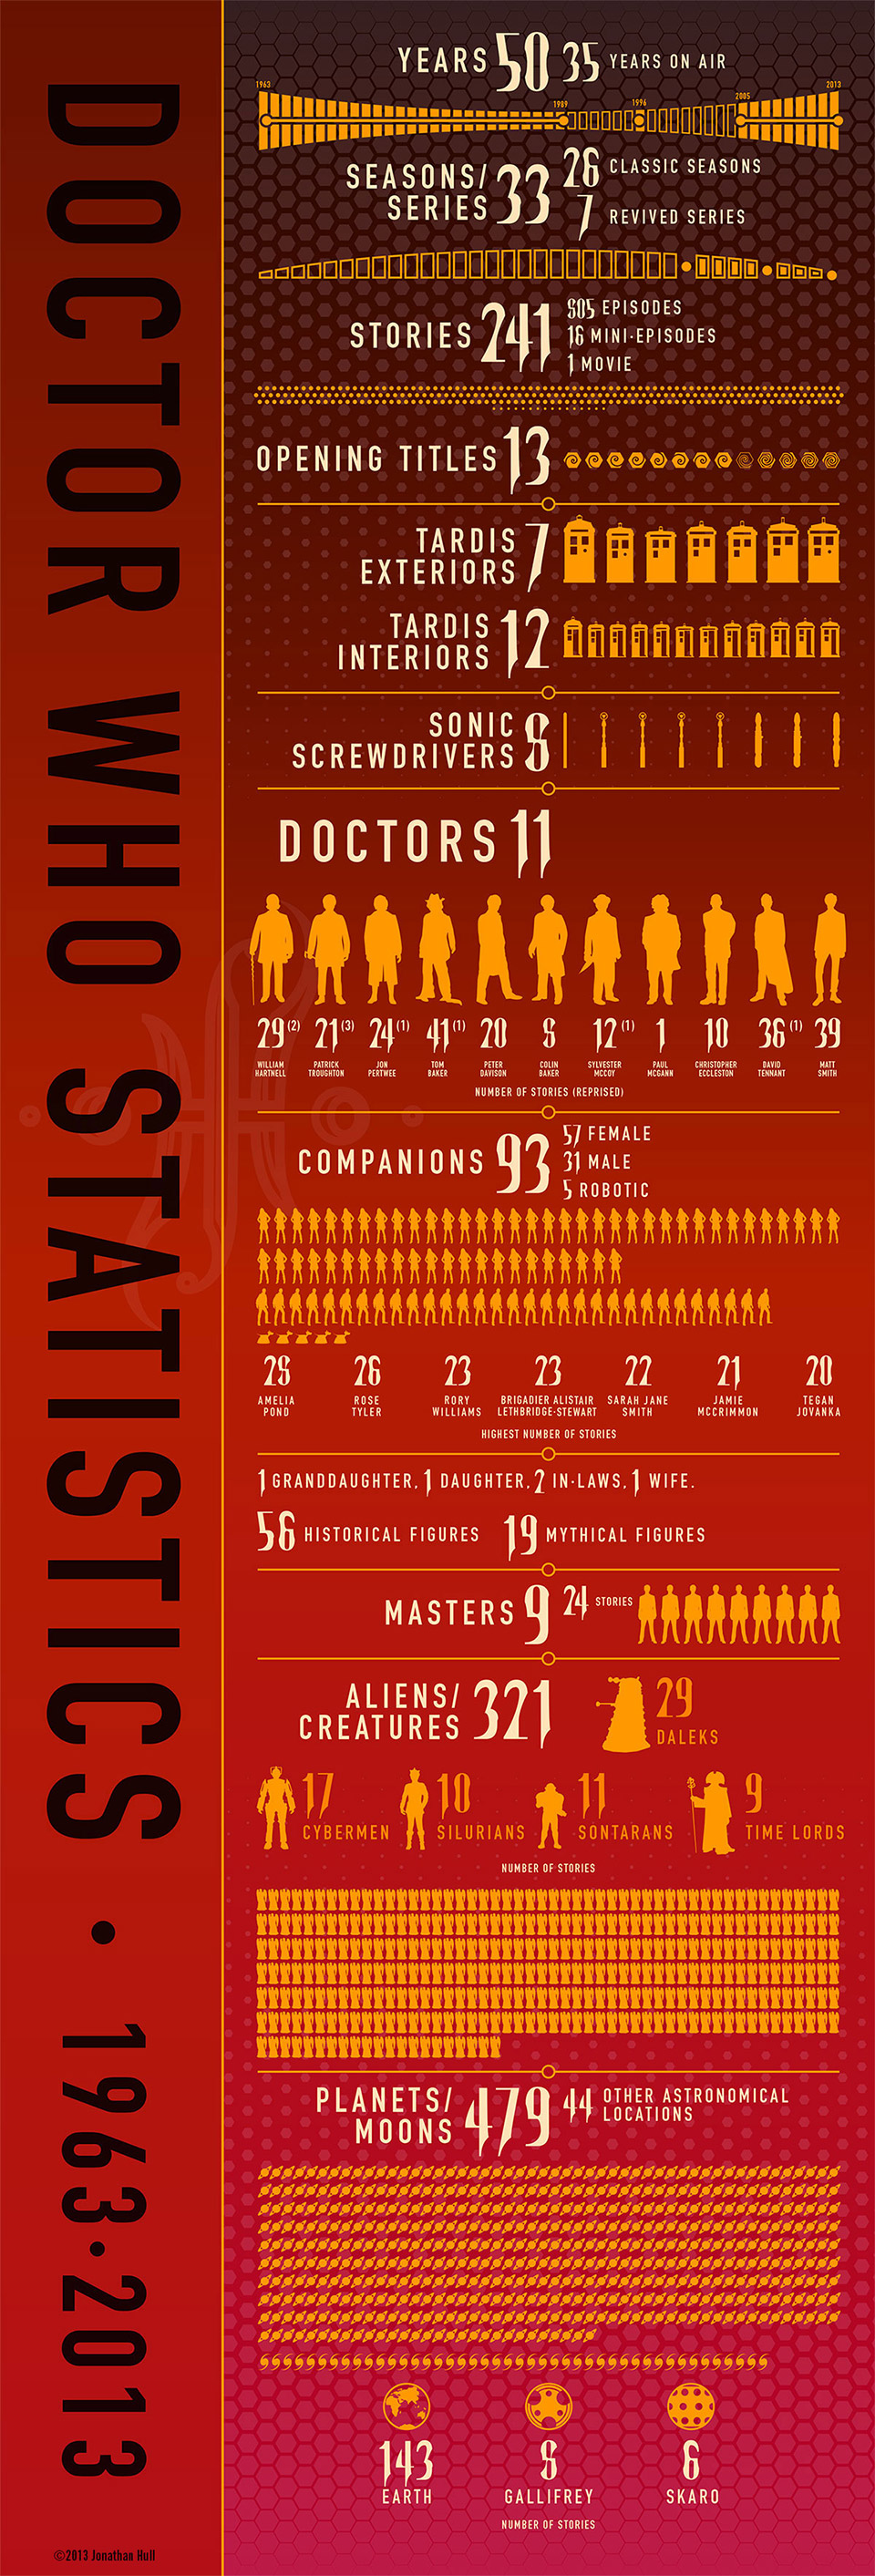 Doctor Who 1963-2013 Statistics